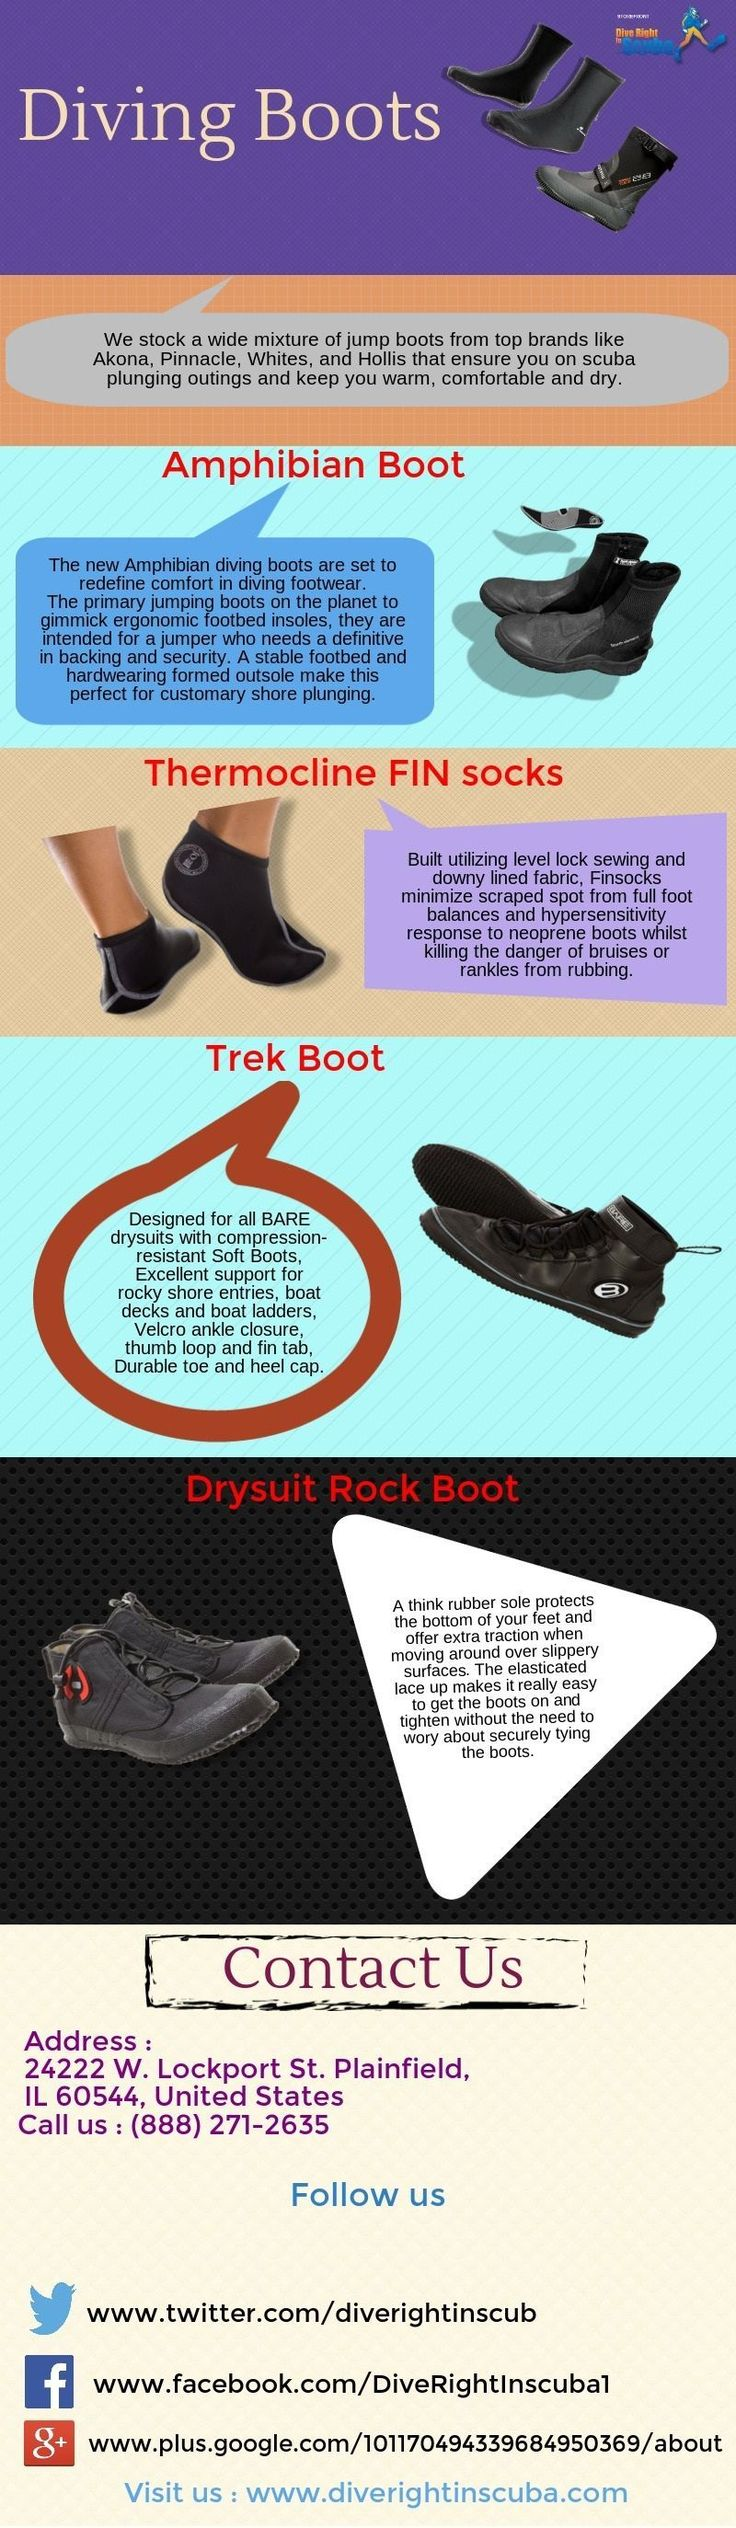 We stock a wide variety of dive boots from top brands like Akona, Pinnacle, Whites, and Hollis that protect you on scuba diving trips and keep you warm, comfortable and dry. #ScubaDivingInfographicsandQuotes